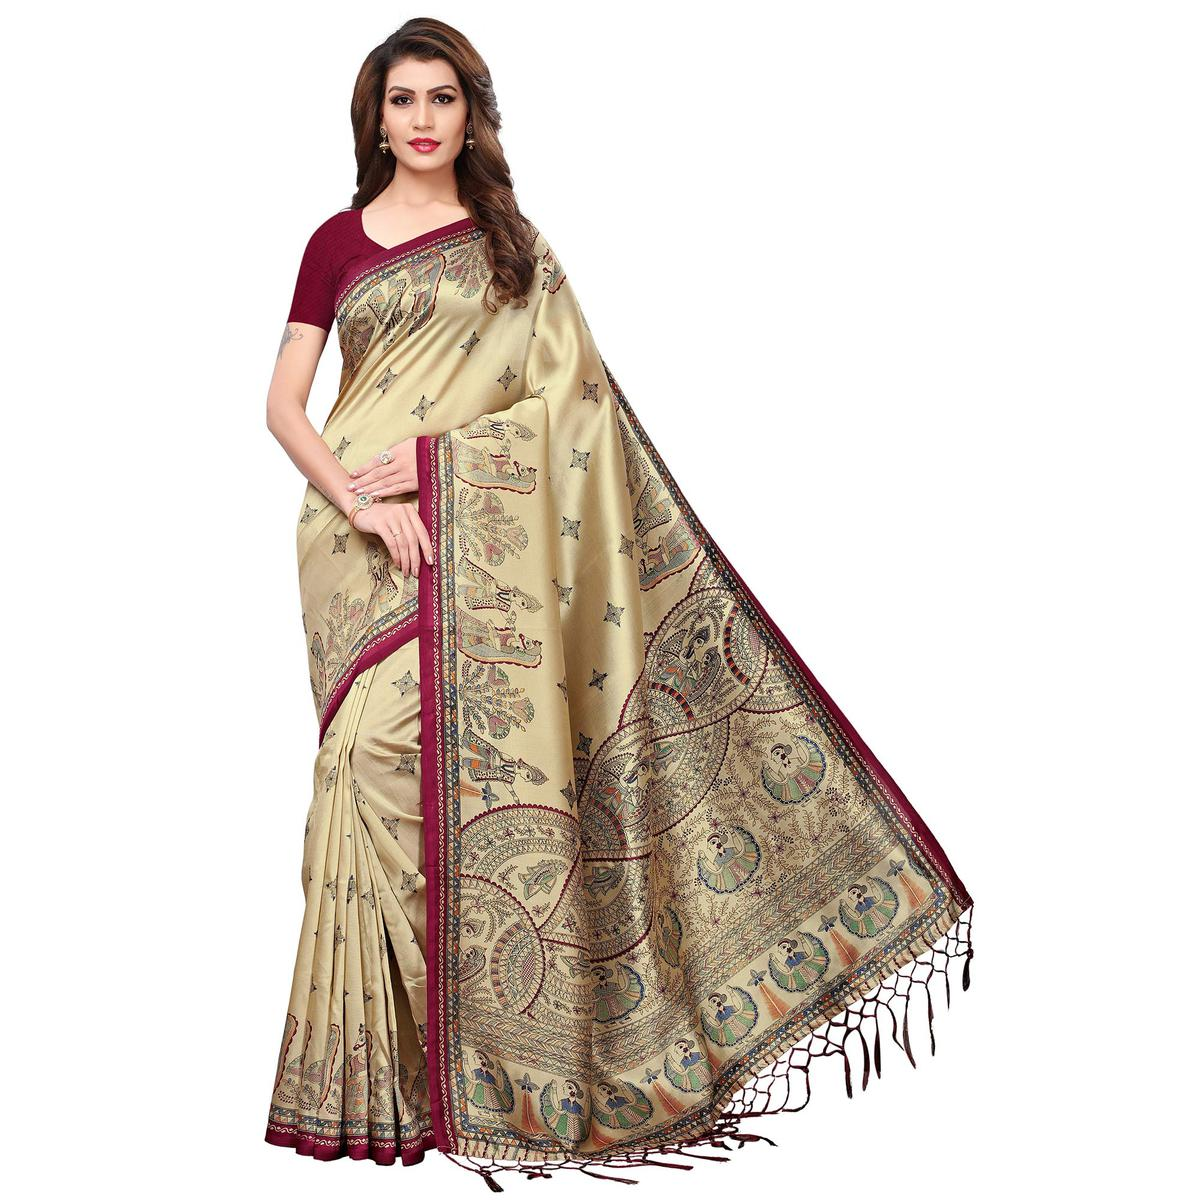 Breathtaking Beige-Maroon Colored Festive Wear Printed Mysore Silk Saree